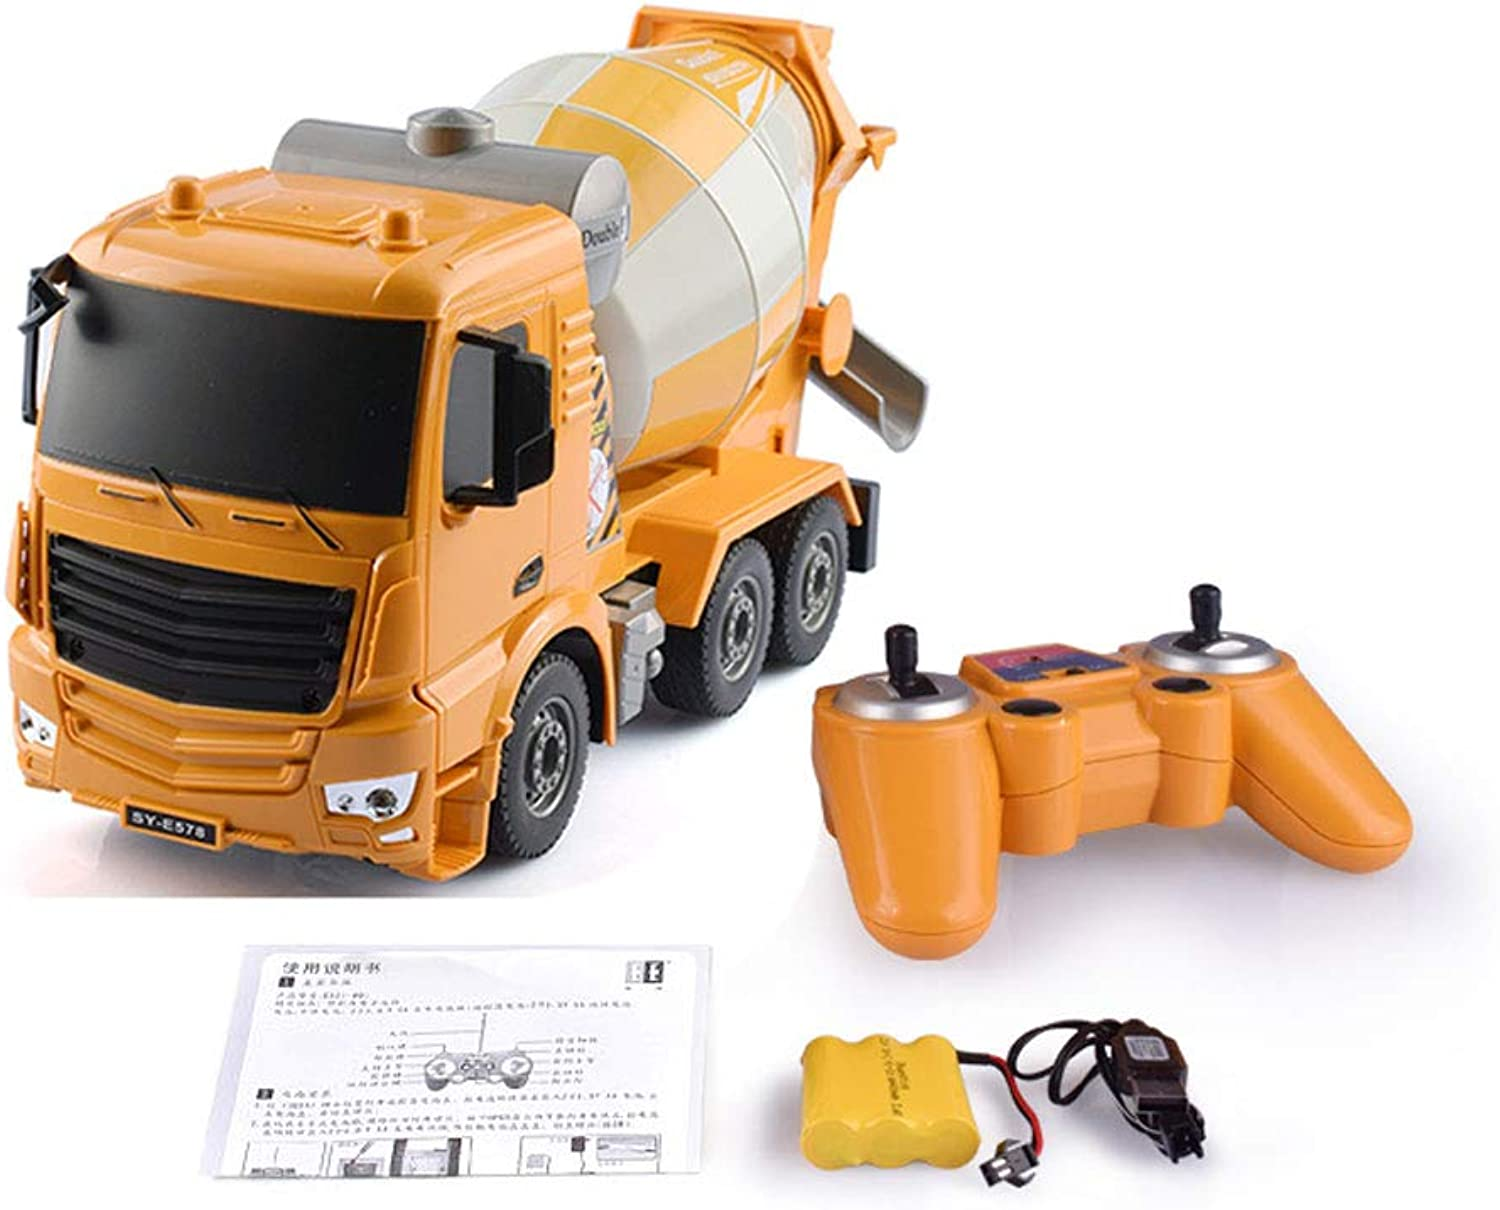 Mogicry Electric Remote Control Engineering Vehicle 2.4Ghz Friction Powered Cement Mixer Push And Go Construction Toy With Lights And Sounds Give The Boys Girls Gift For Kids 3+ (color   Yellow)